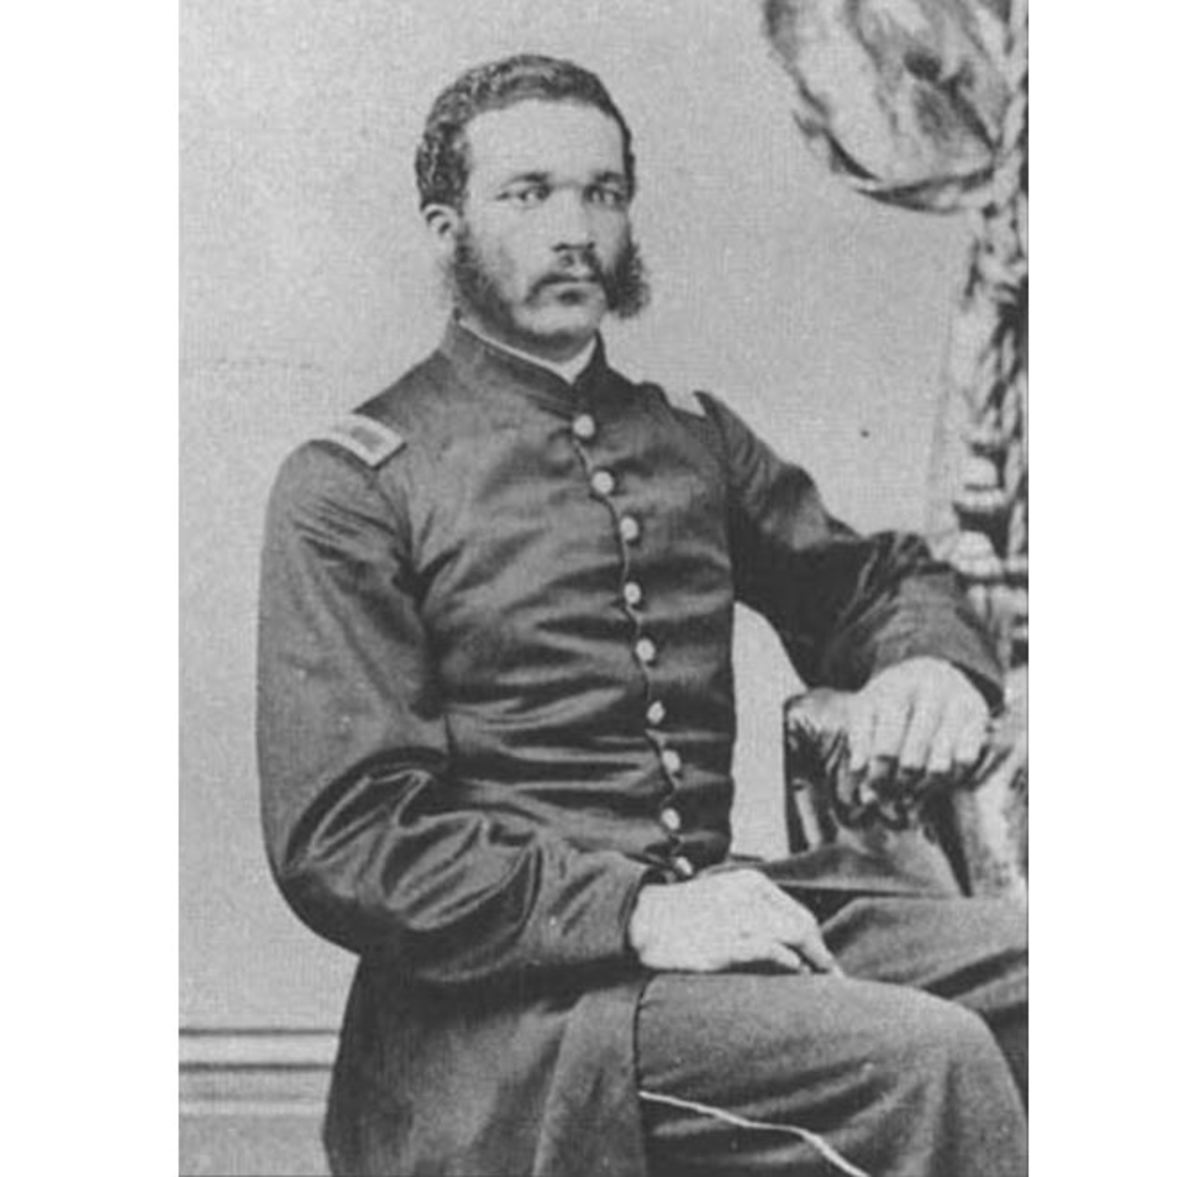 2nd Lt William H. Dupree of the 55th Massachusetts infantry regiment